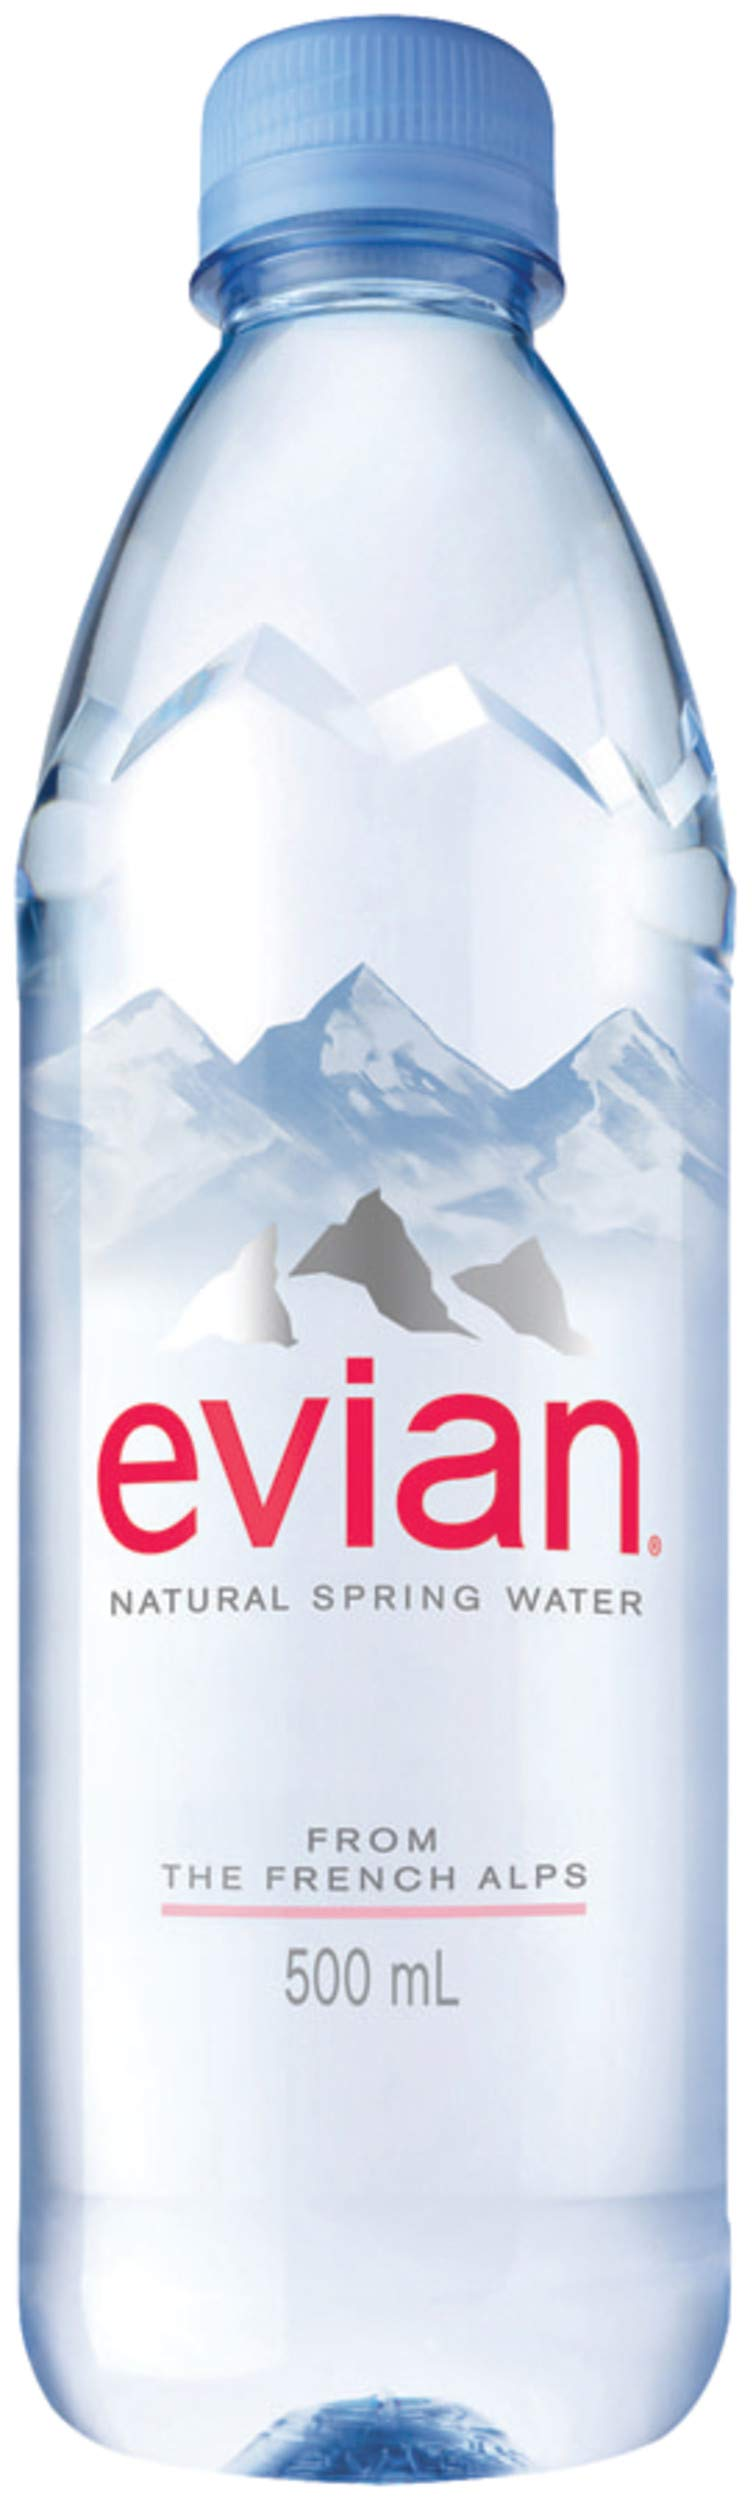 evian Natural Spring Water Bottles, Naturally Filtered Spring Water in Individual-Sized Plastic Bottles, 16.9 Fl Oz, Pack of 24 by evian (Image #3)